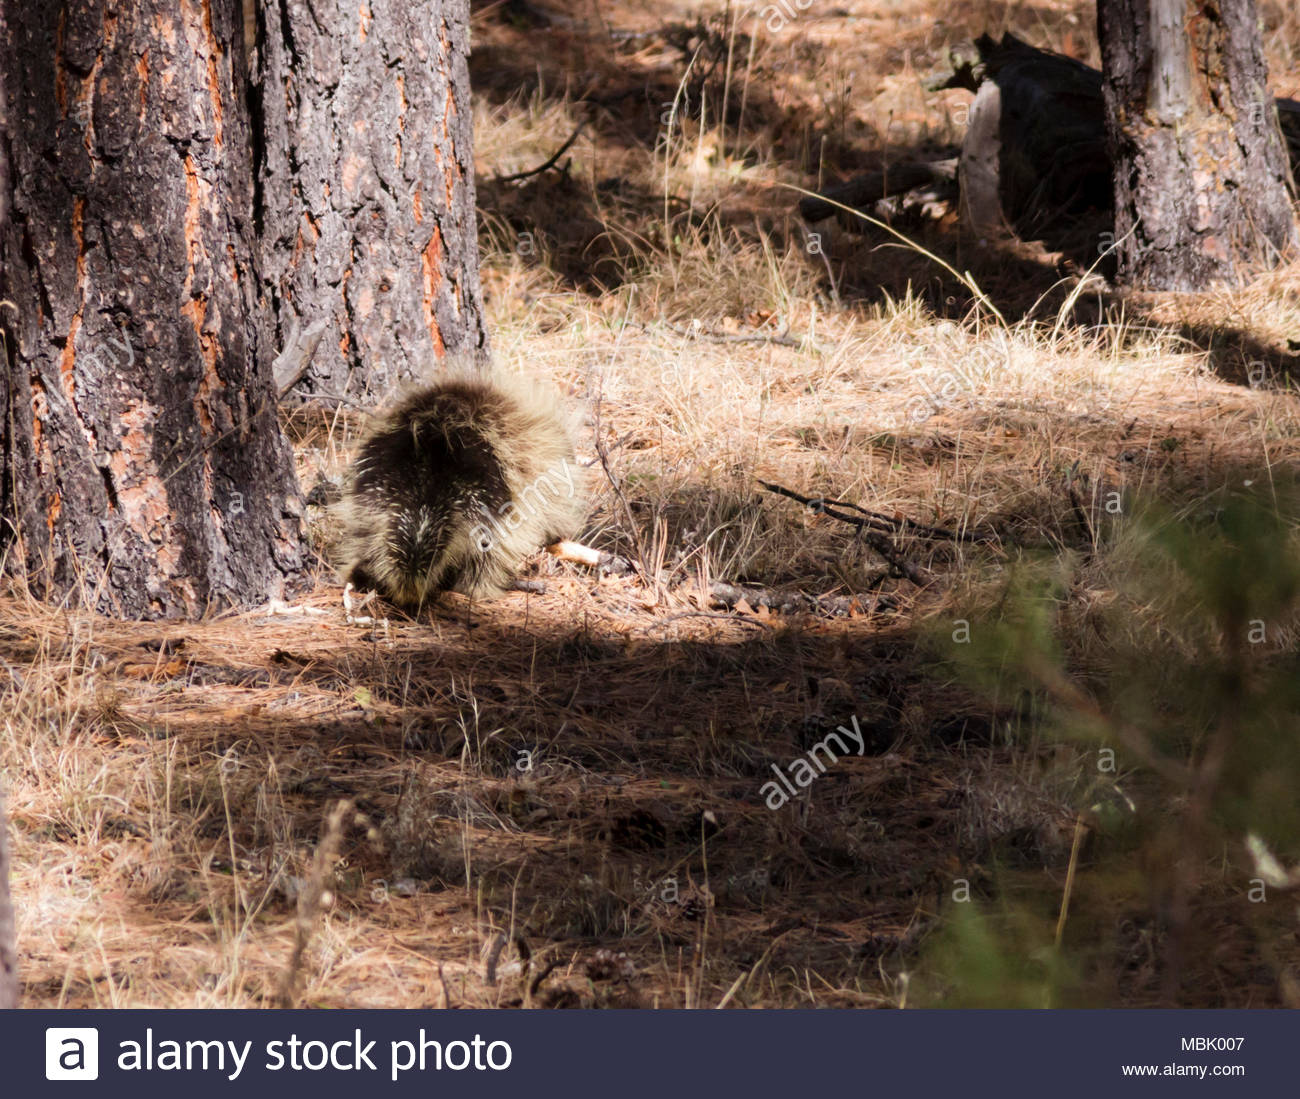 North American Porcupine, Erethizon dorsatum, common porcupine, rear view walking through forest in New Mexico, USA Stock Photo